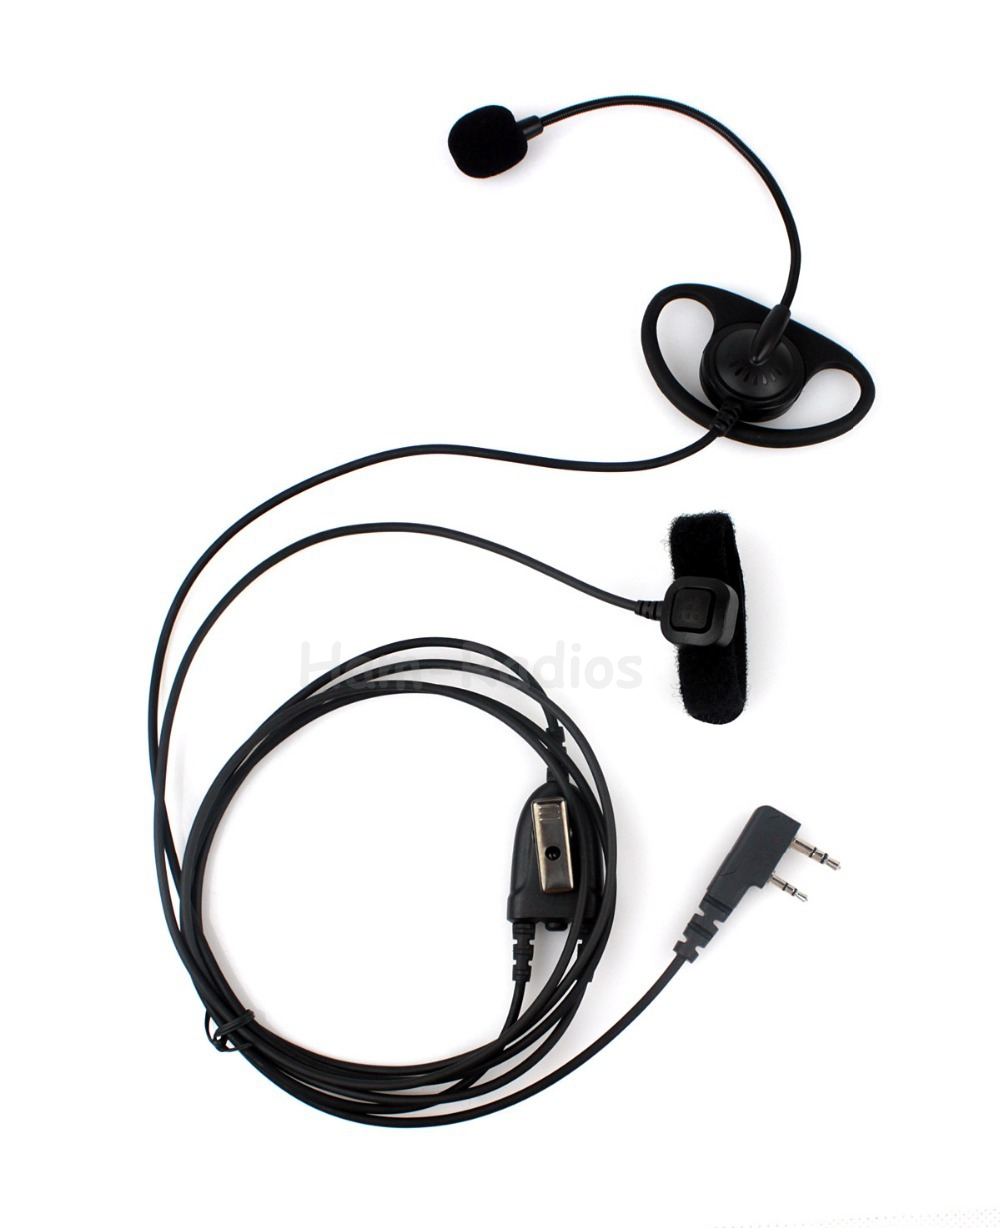 compare prices on tk2107 online shopping buy low price tk2107 at 2 pin ear rod headphone for quansheng tyt baofeng uv5r 888s kenwood radios tk2107 3107